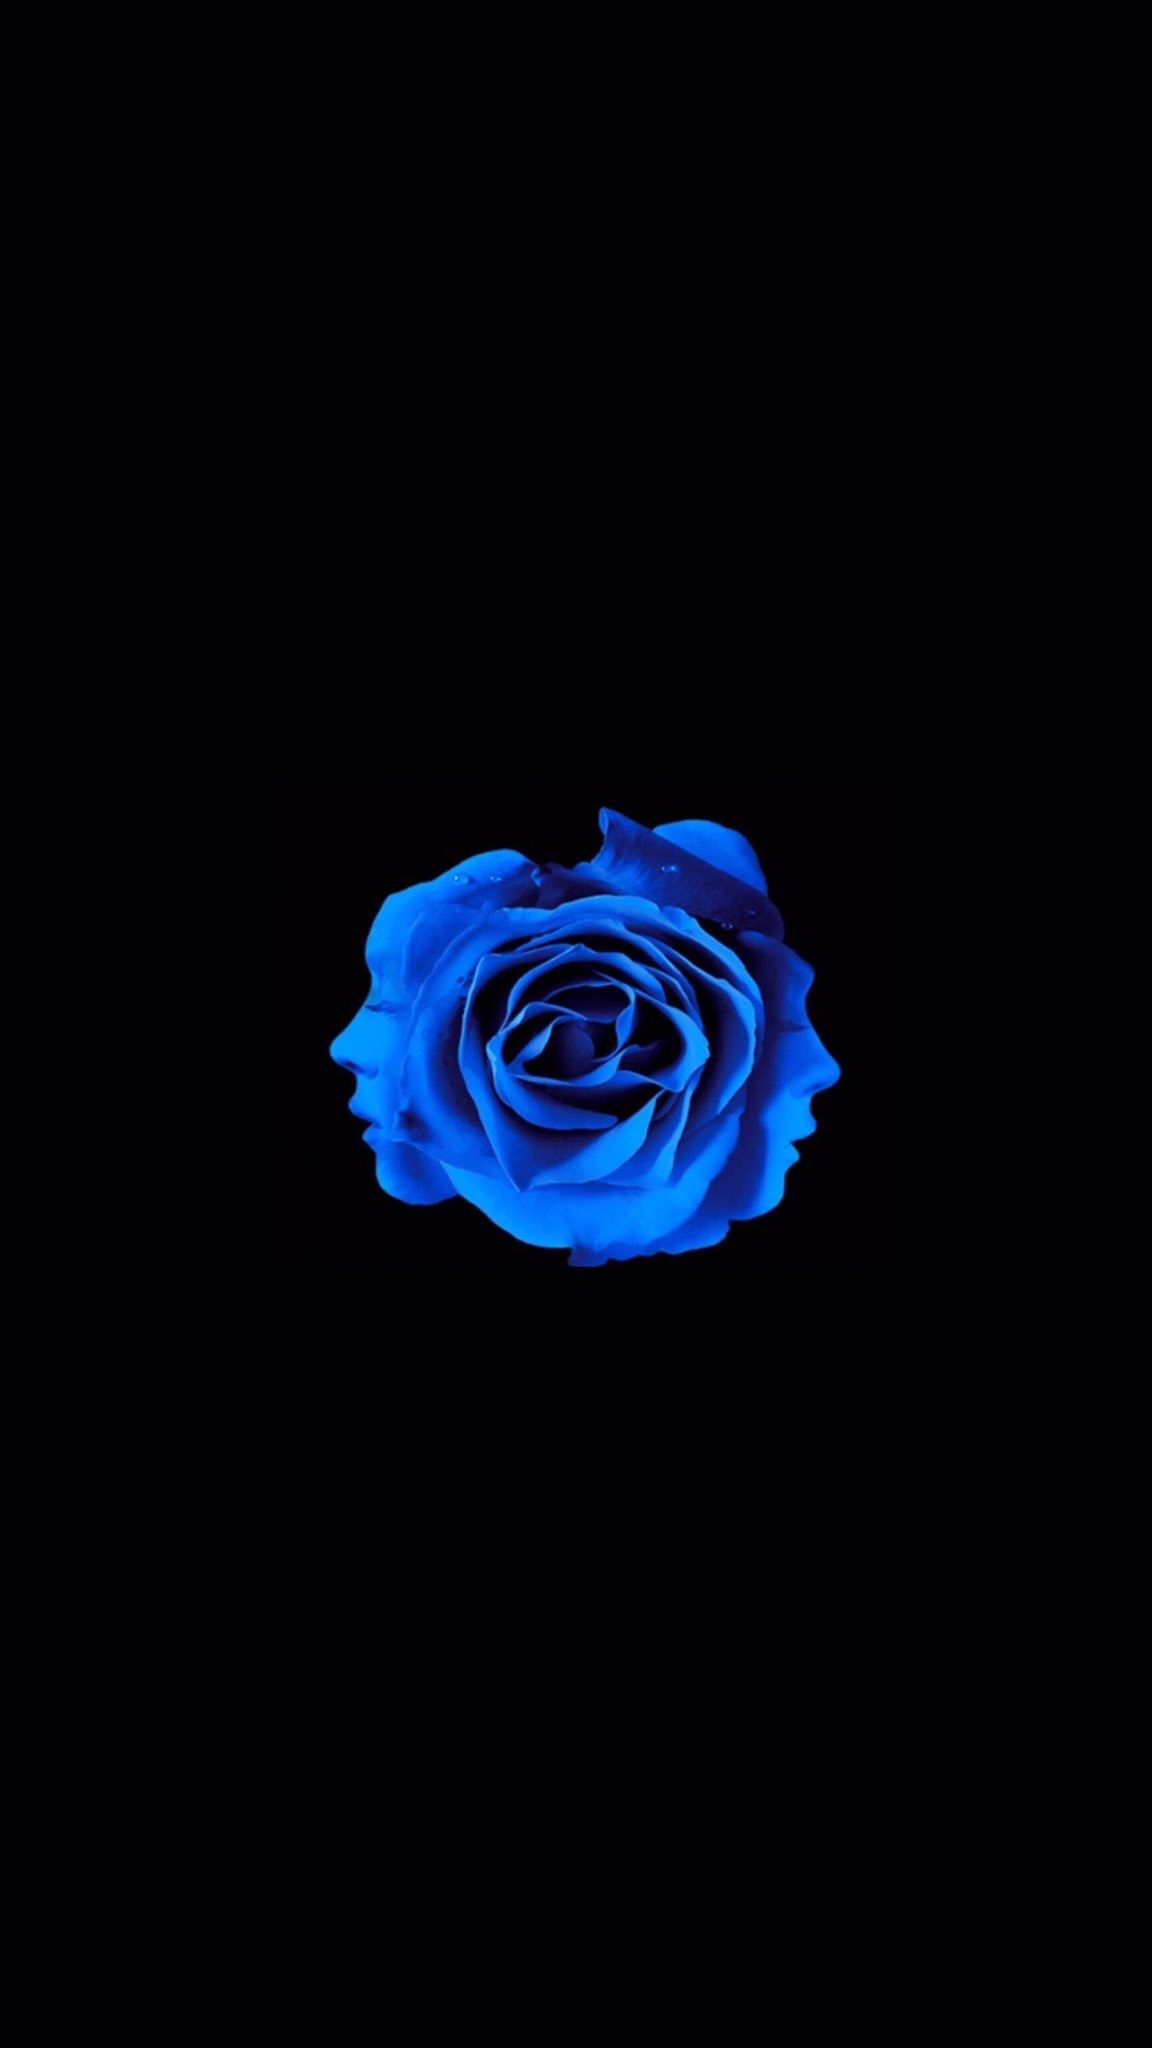 Mino S Blue Rose Wallpaper 3 Blue Roses Wallpaper Blue